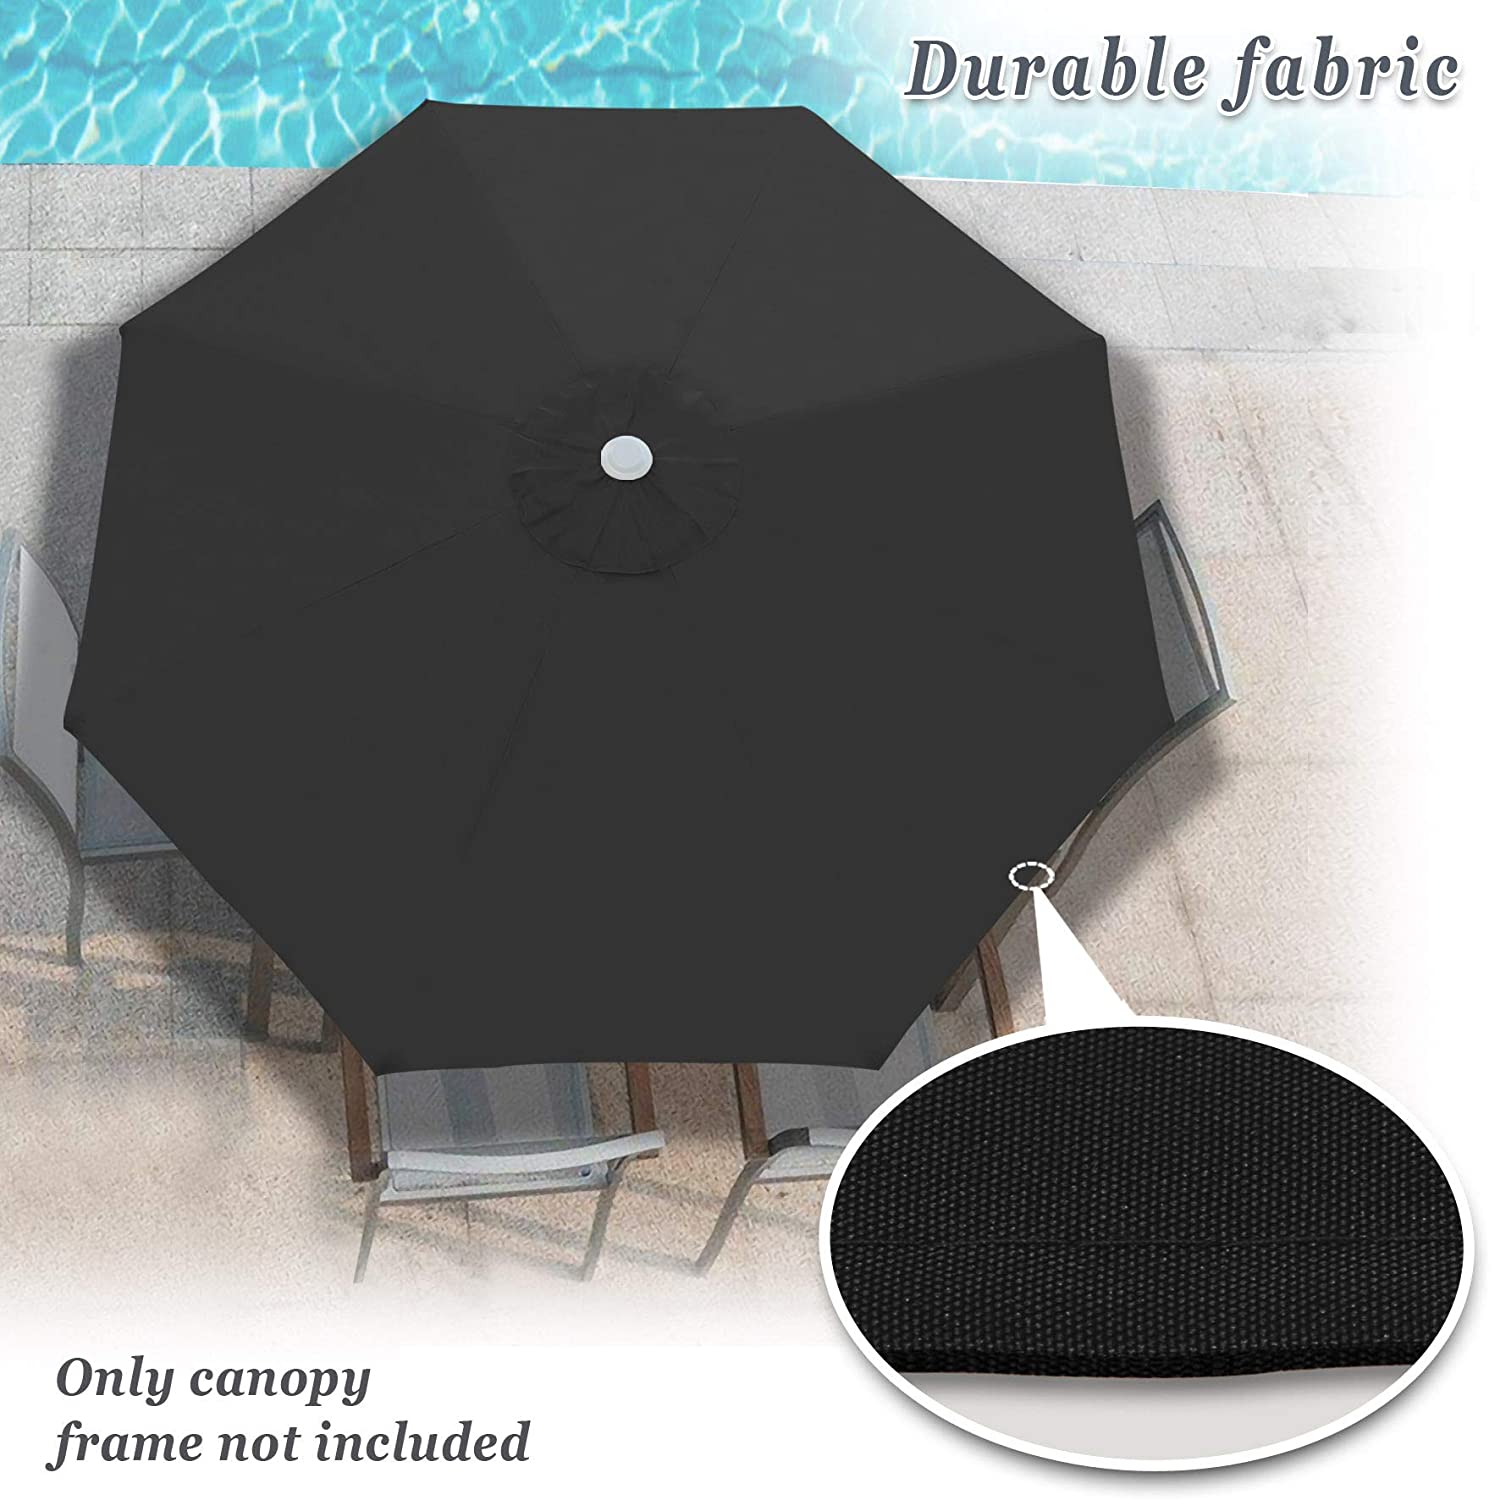 73832a9a05c7 Strong Camel Replacement Patio Umbrella Canopy Cover for 10ft 8 Ribs  Umbrella Taupe (Canopy ONLY) (Black)